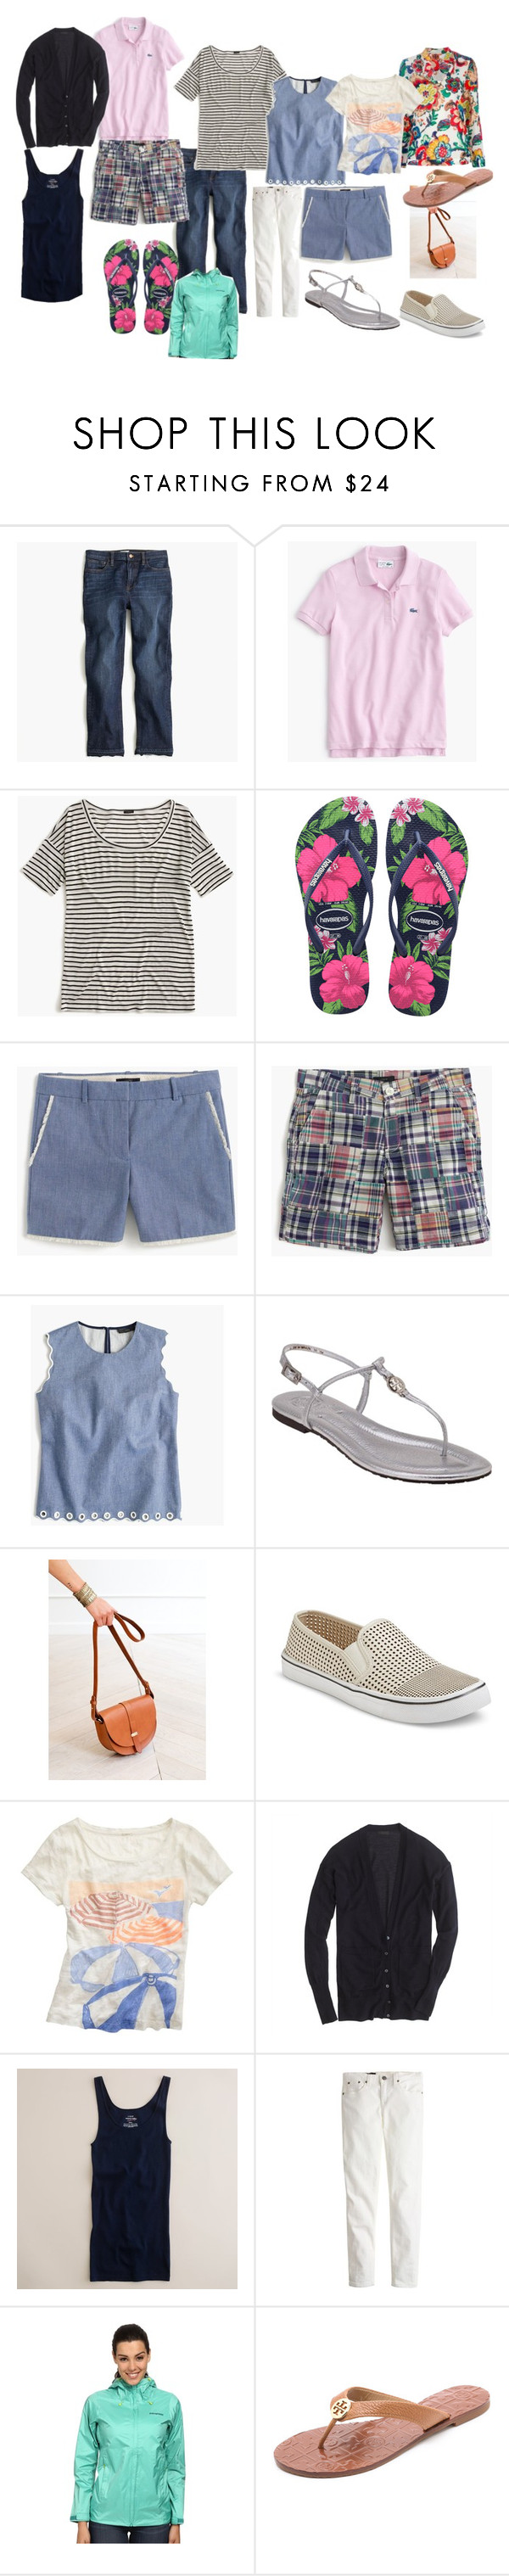 """""""Planning for Daughter's College Move In Weekend"""" by llsdenver on Polyvore featuring J.Crew, Tory Burch, Sézane and Patagonia"""